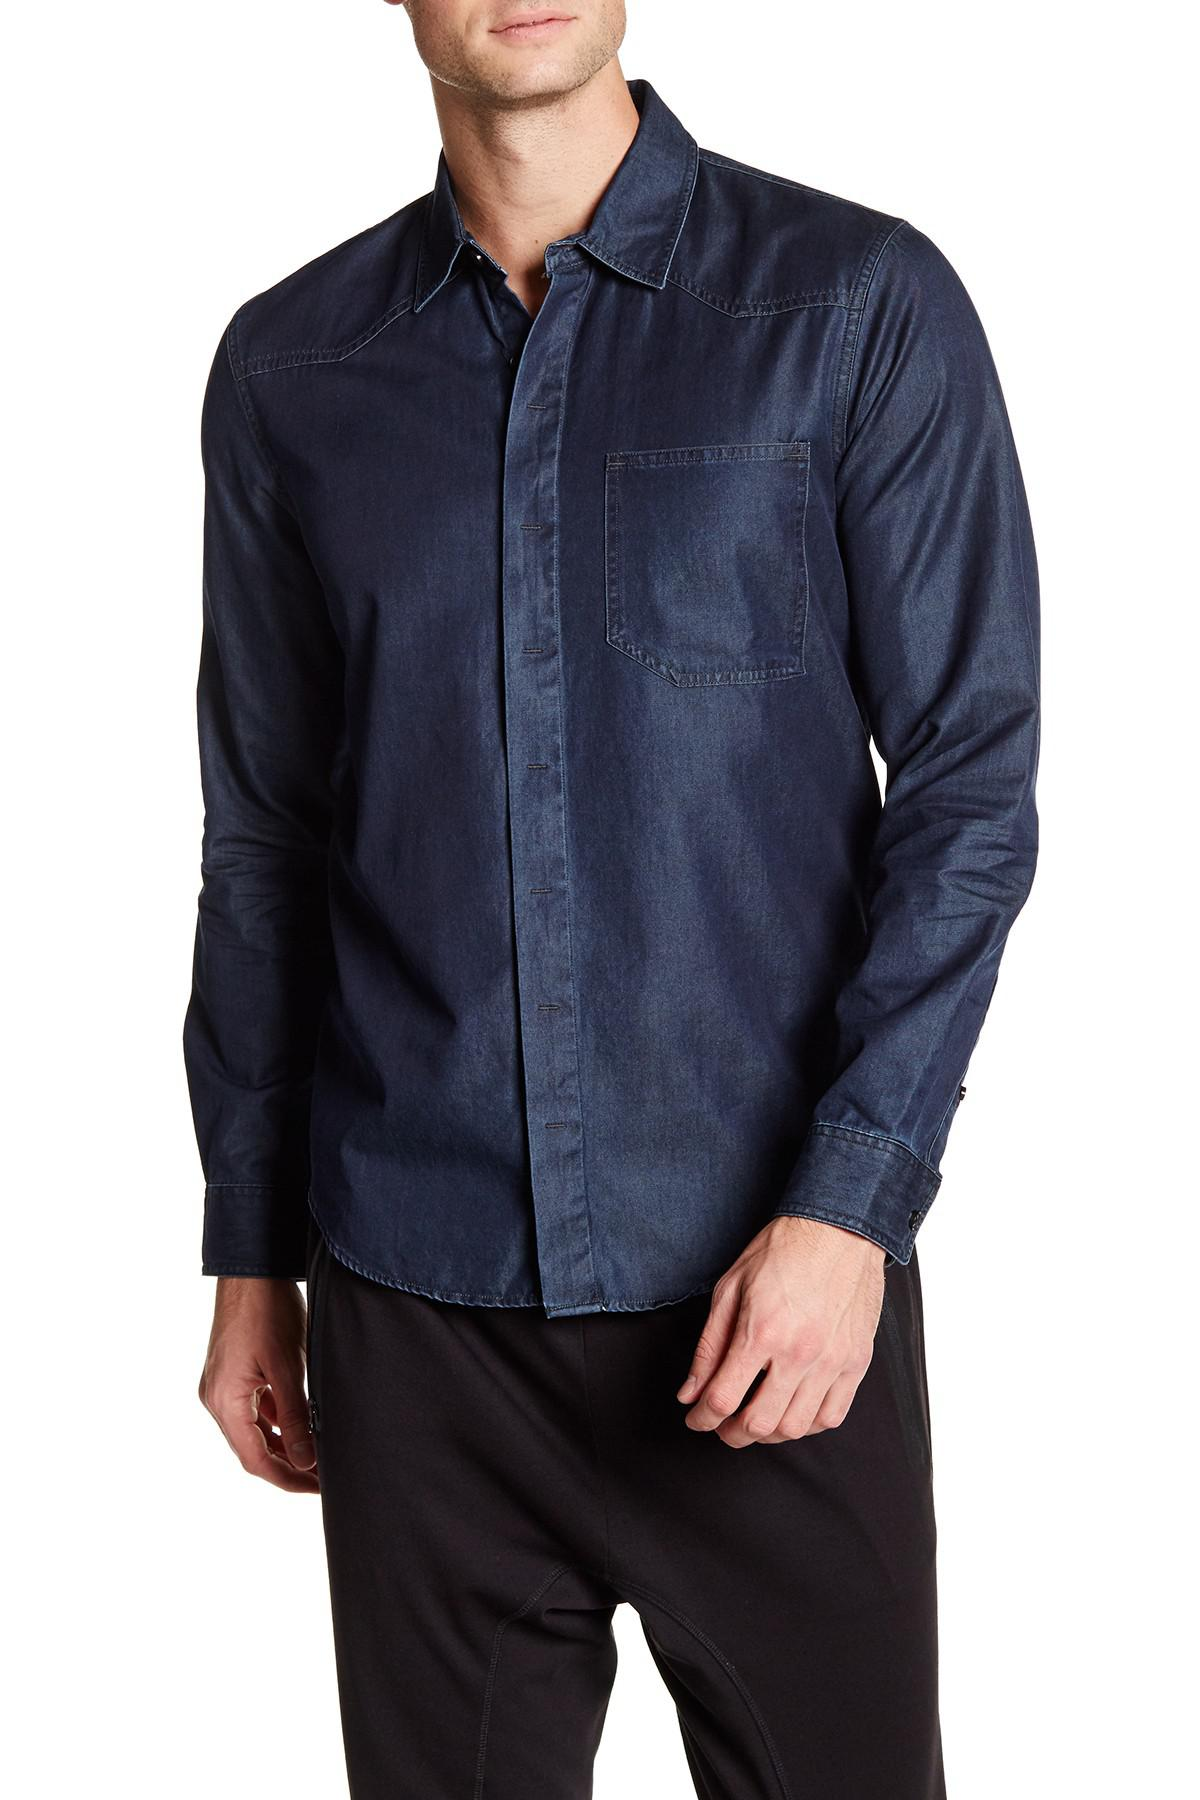 Lyst quinn harper long sleeve shirt in blue for men for Nordstrom custom dress shirts